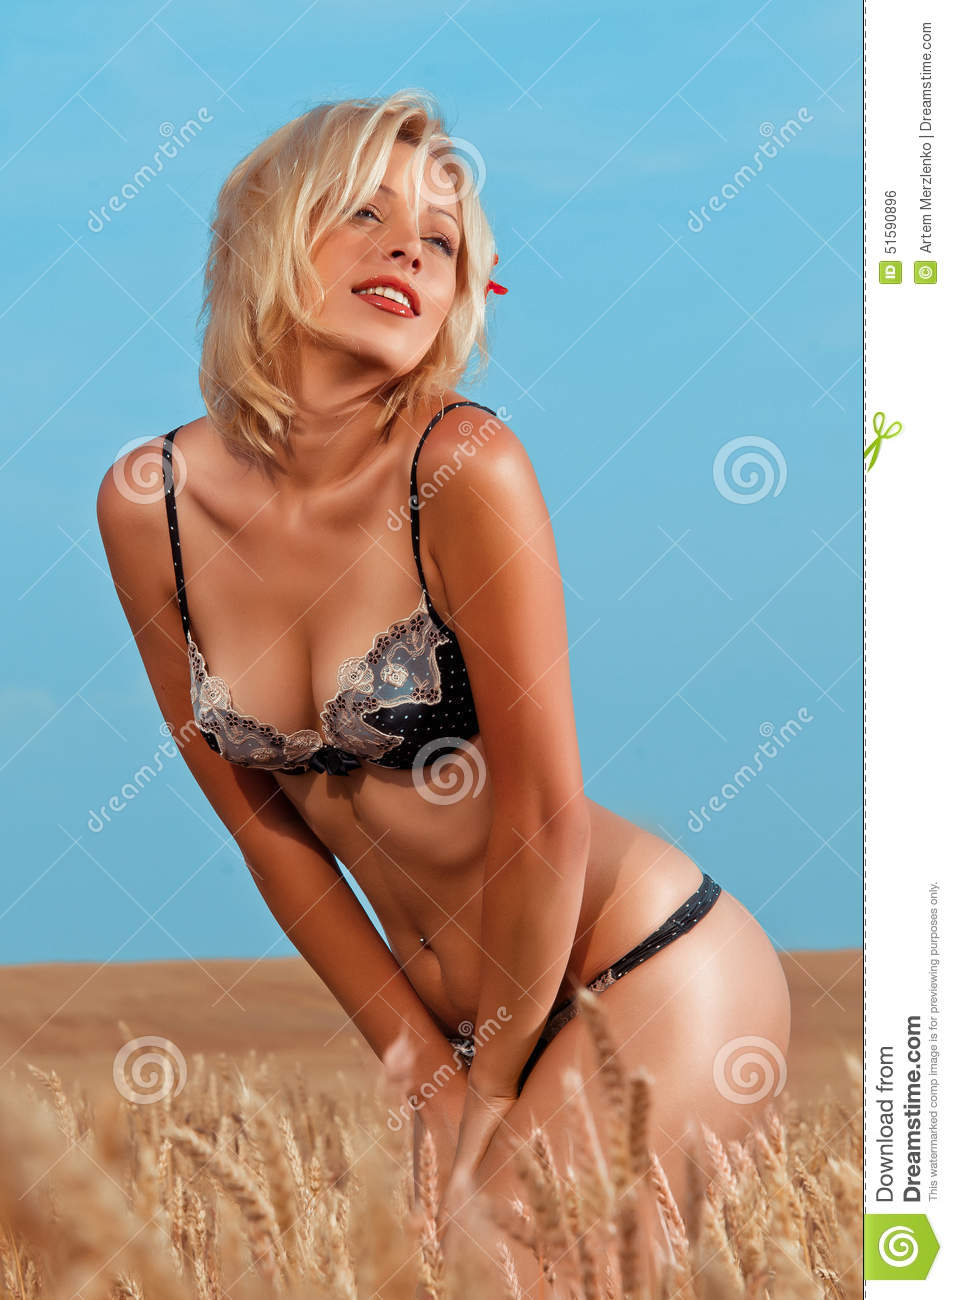 Woman in the wheat field stock photo. Image of model ...